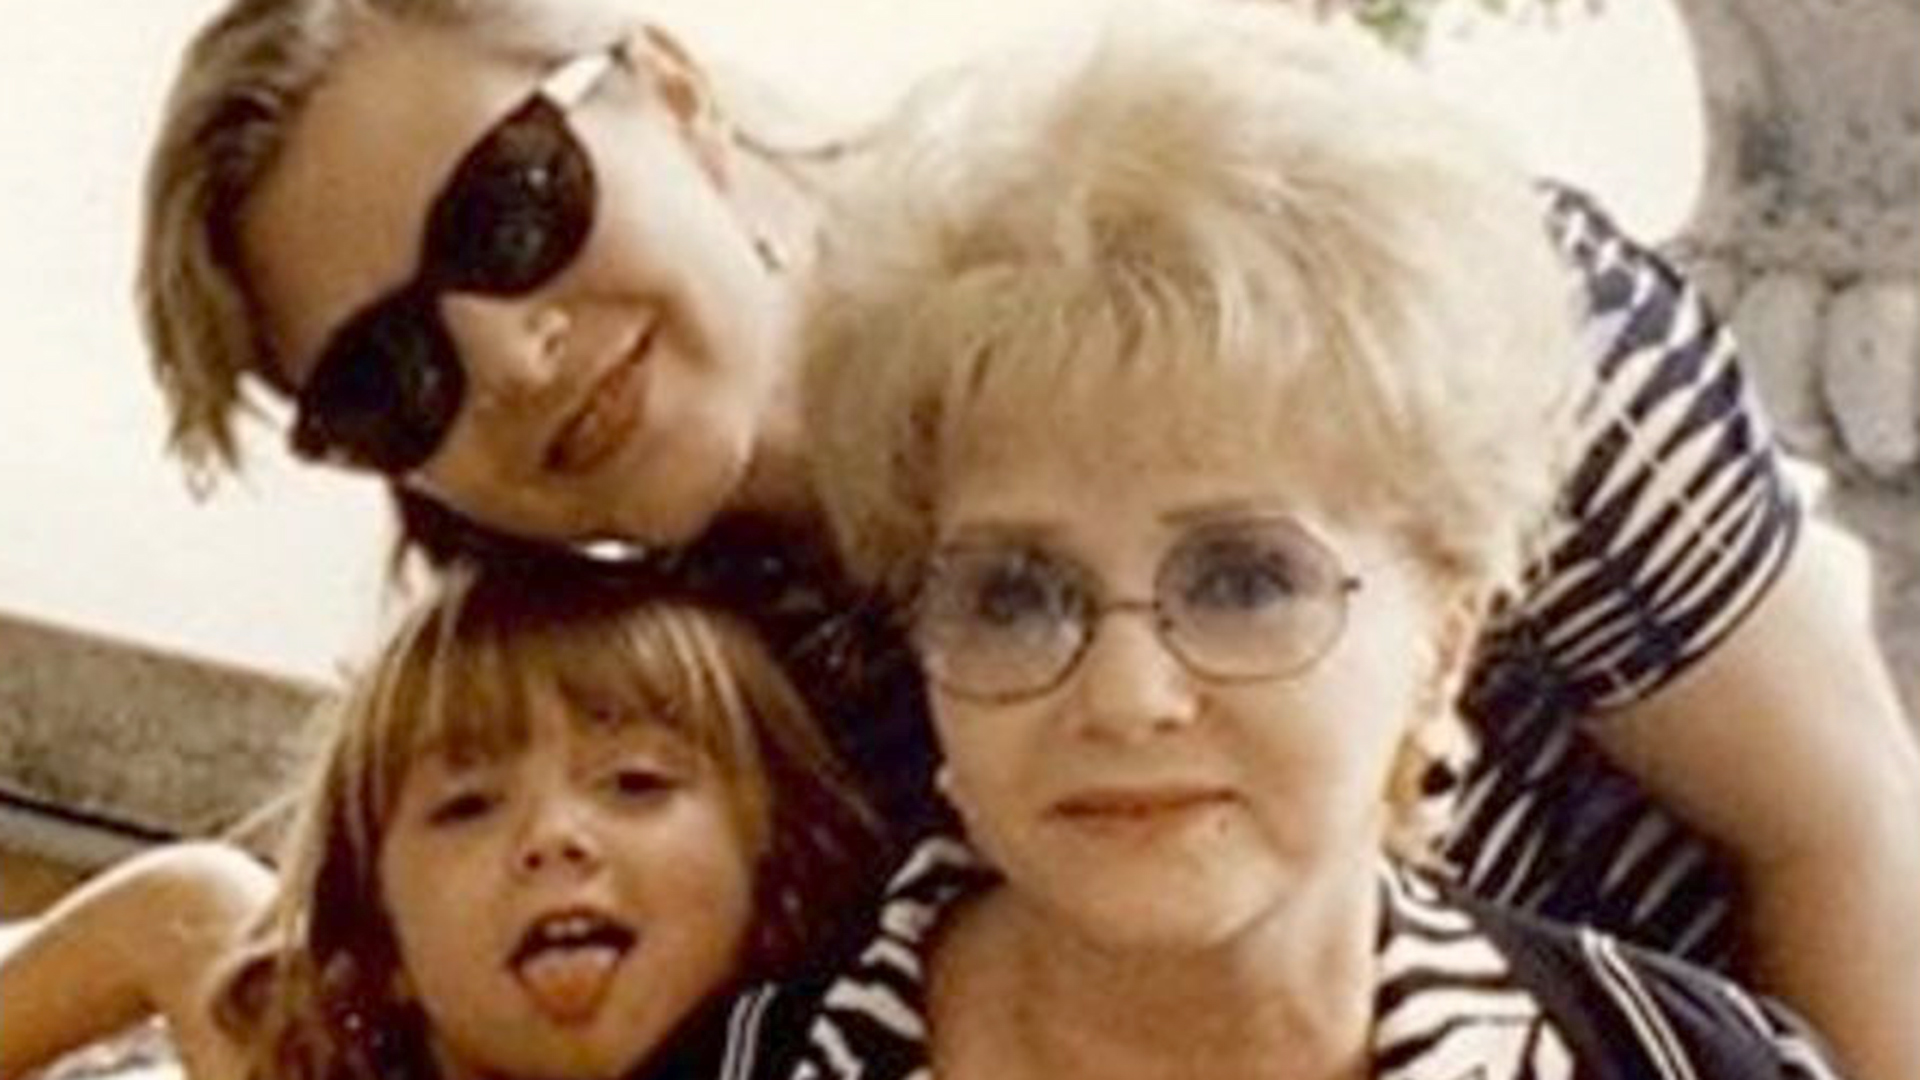 Billie Lourd thanks fans for 'strength' after death of Carrie Fisher, Debbie Reynolds - TODAY.com